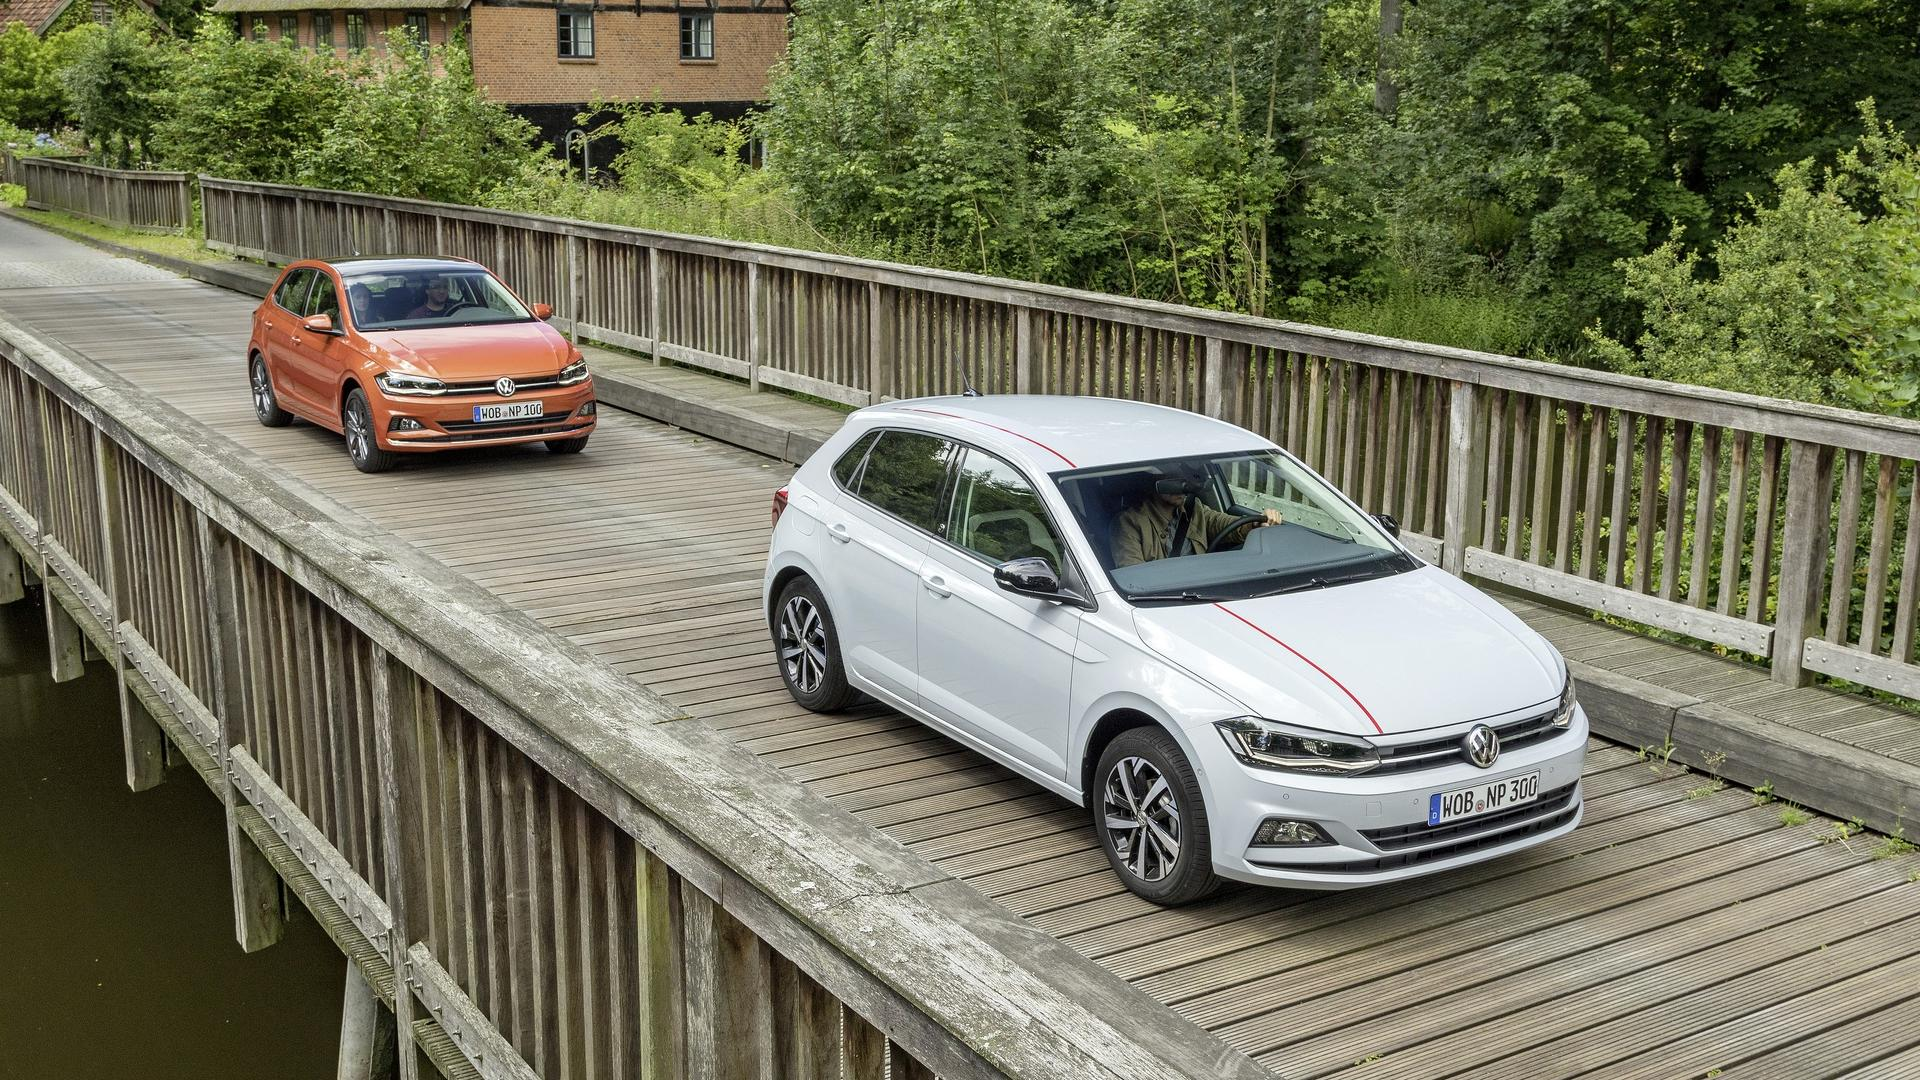 2018 Vw Polo Detailed In New Videos Extended Gallery 150 Pics